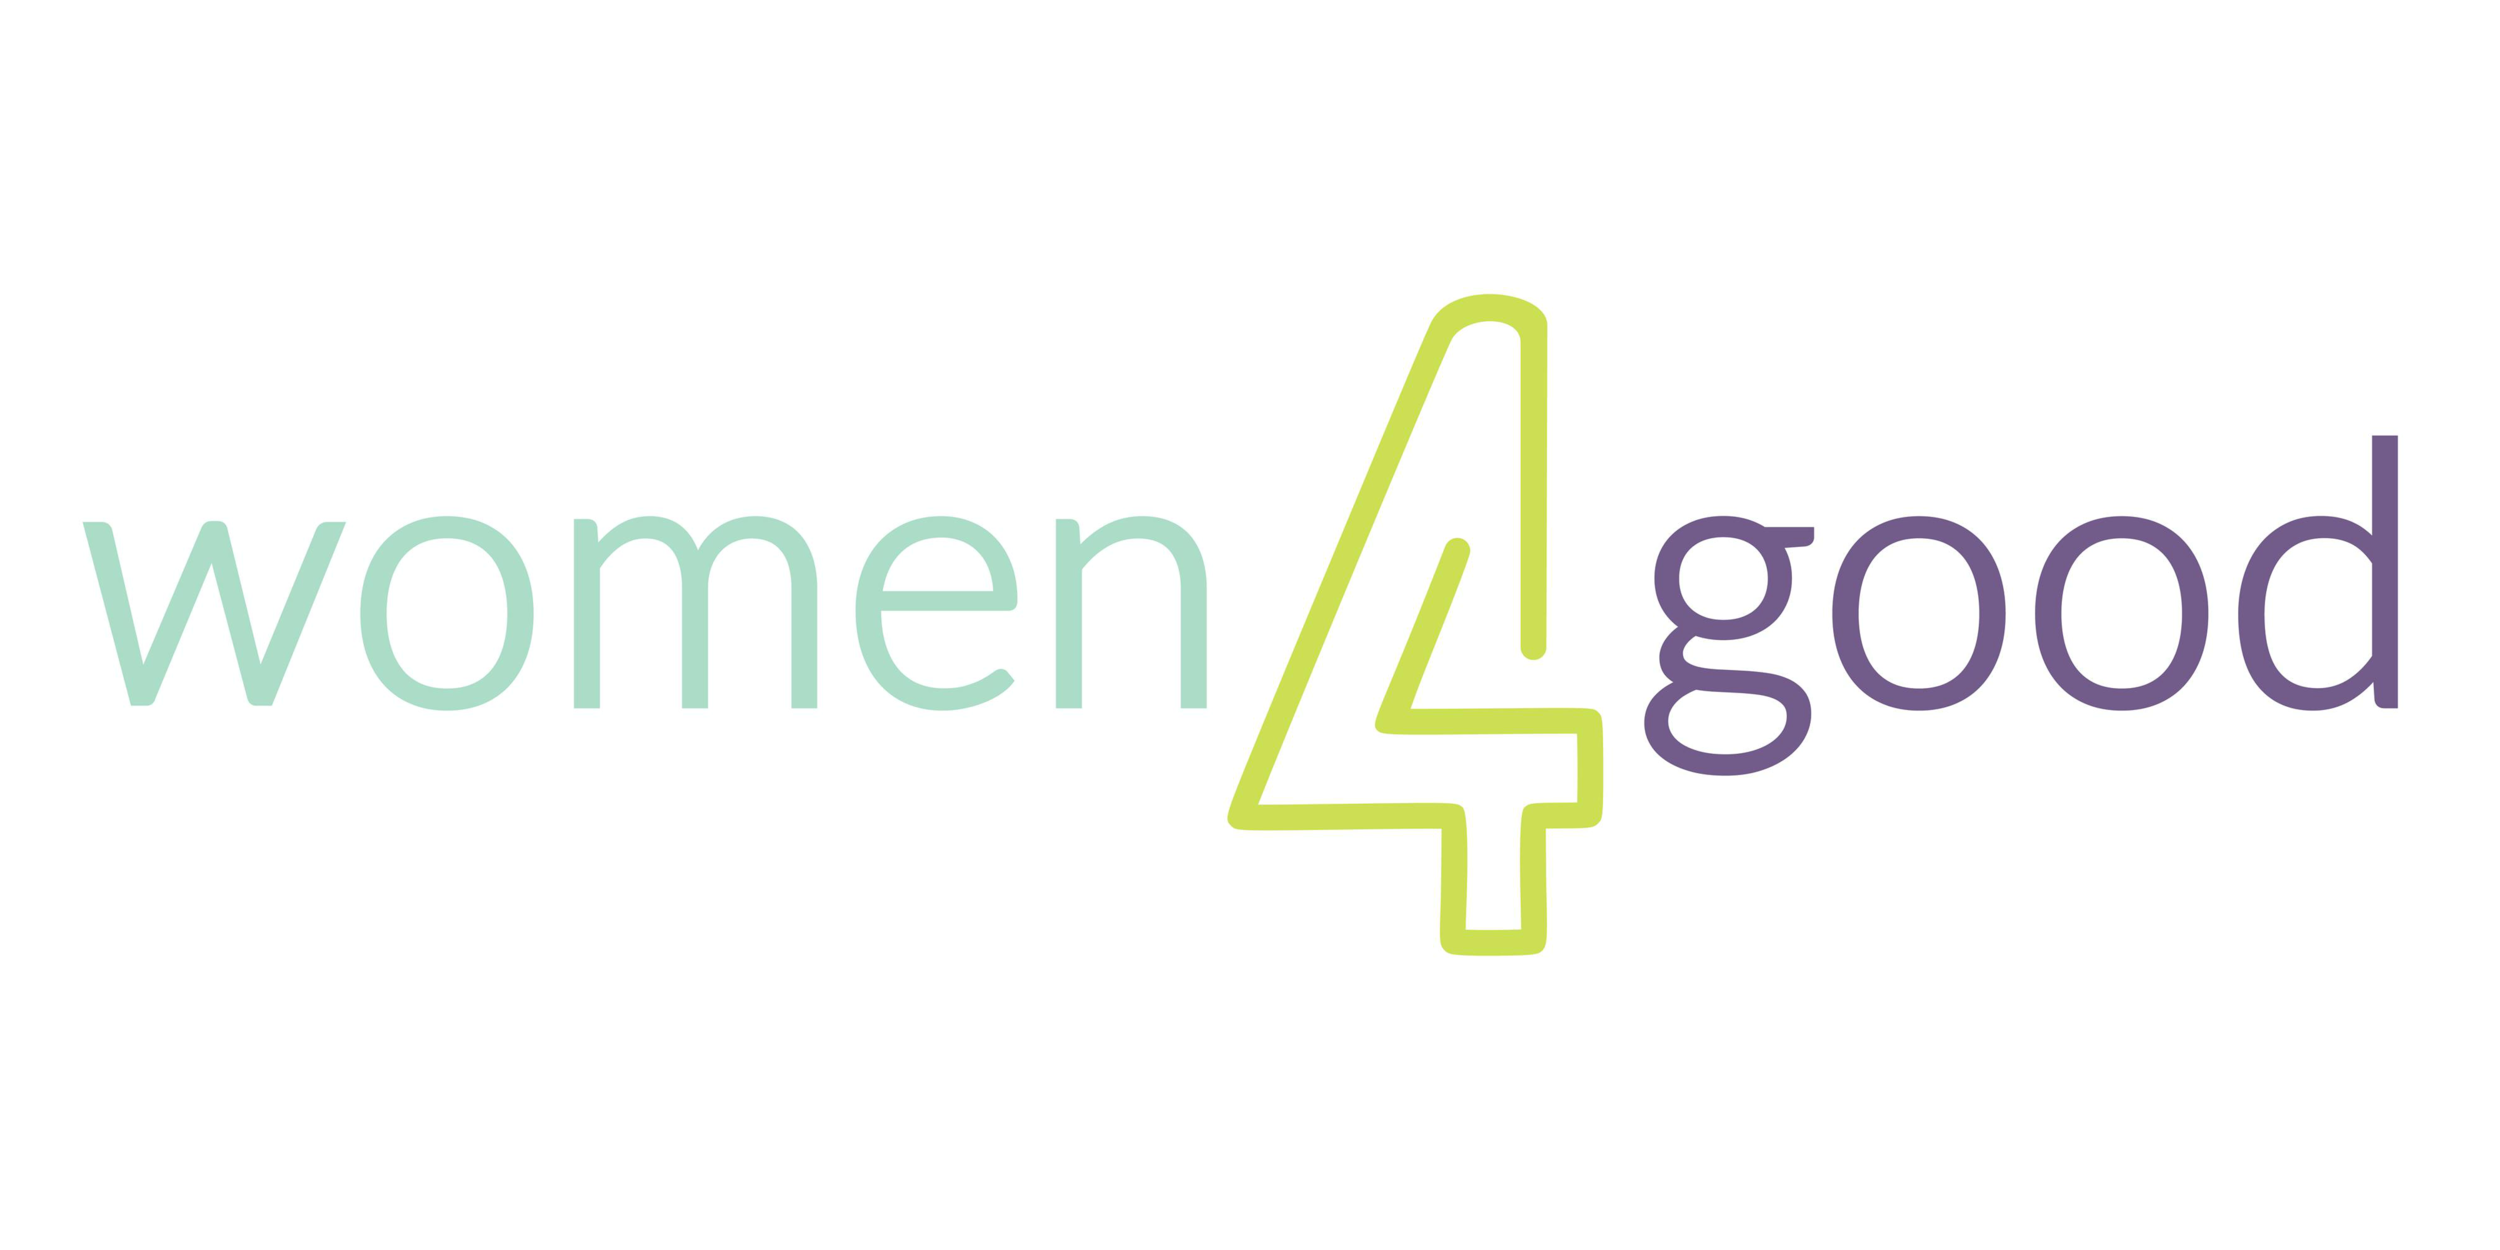 Women4Good connects Bay Area women who have a passion for social impact. In 2017 over 600 members participated in monthly meetups, panel discussions and fundraisers. Our partners include the IRC, Samasource and Spark SF.